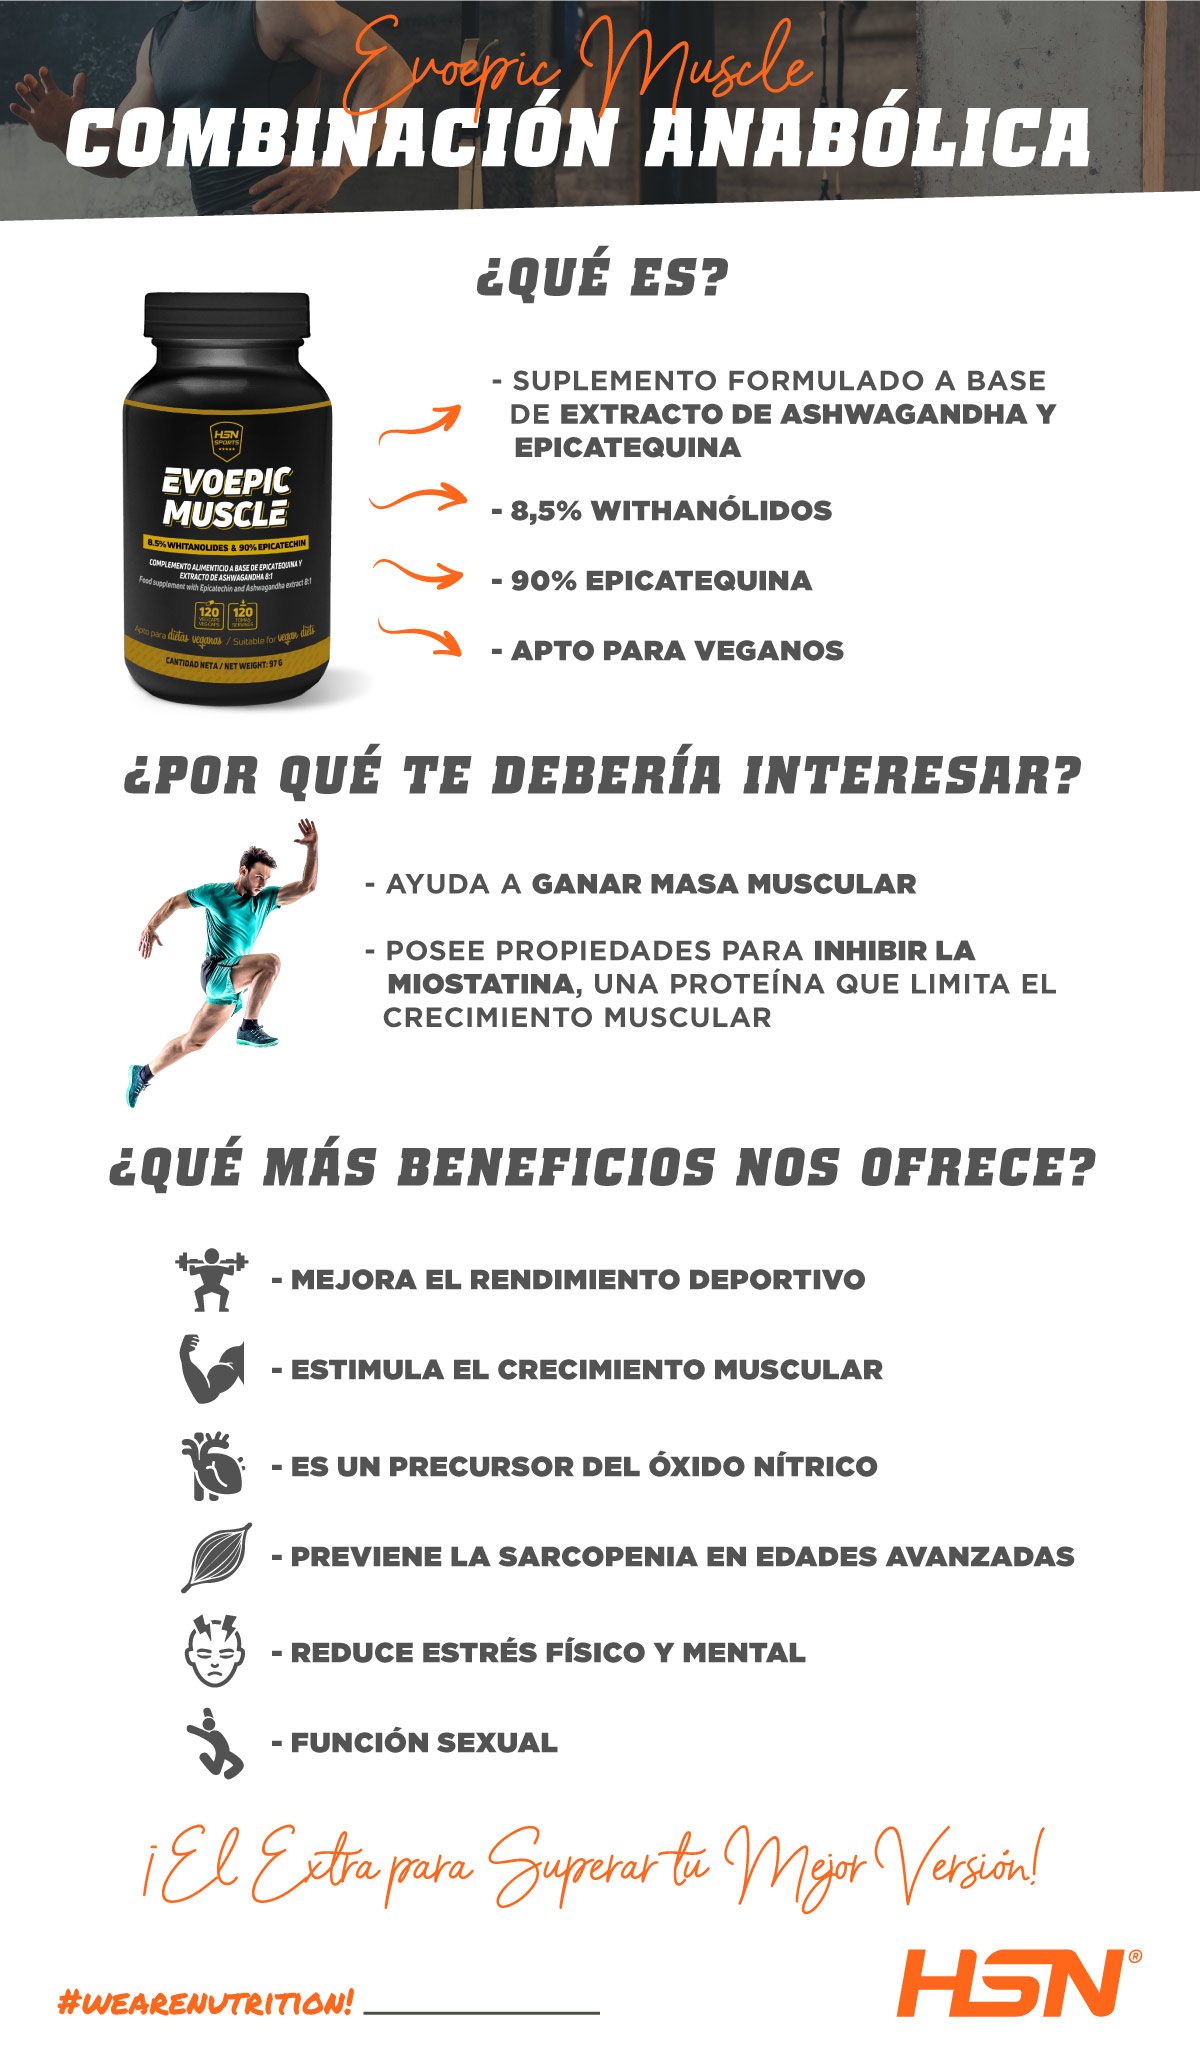 Evoepic Muscle de HSNsports